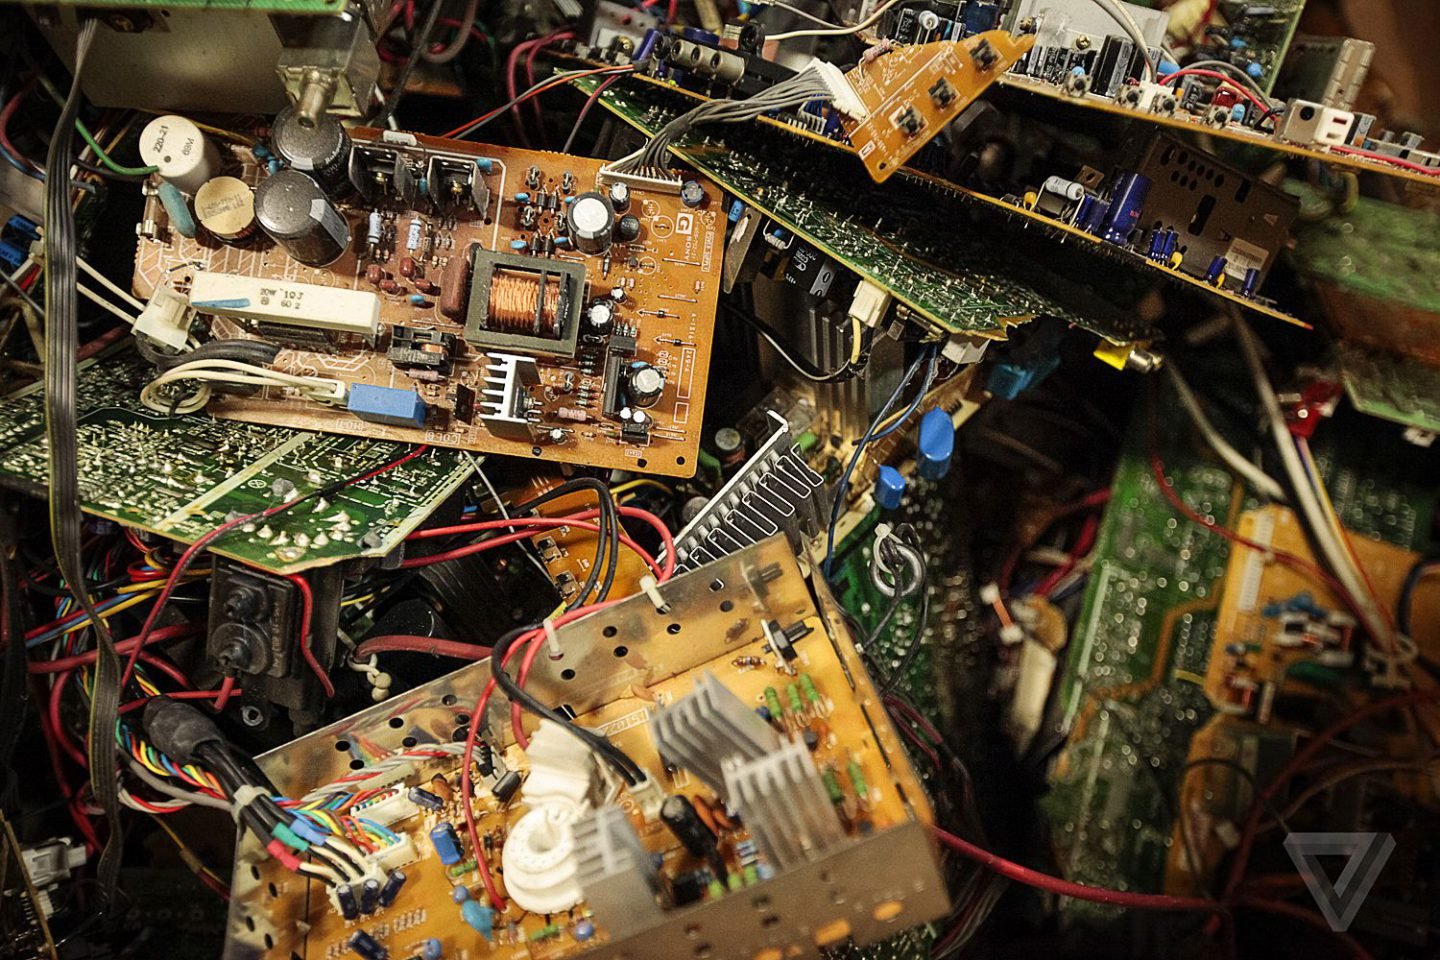 E-waste, from an environmental nightmare to a social business |The Switchers